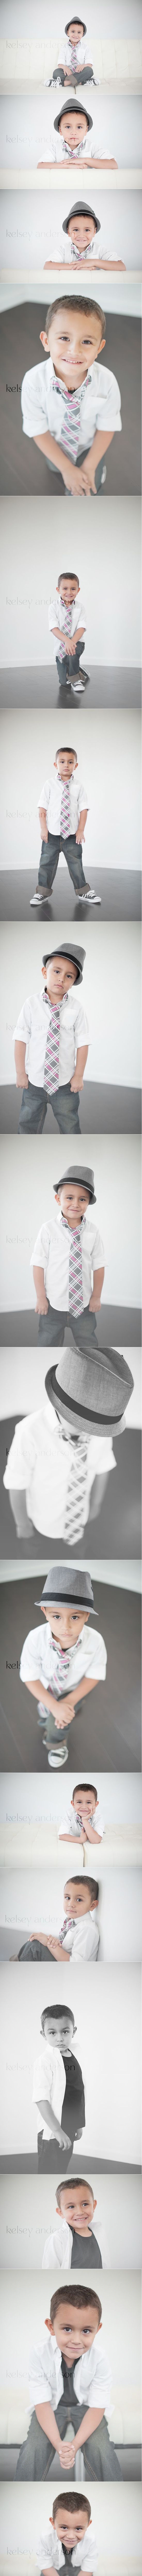 boy posing ideas. These are cute. Little boys are so difficult to pose!